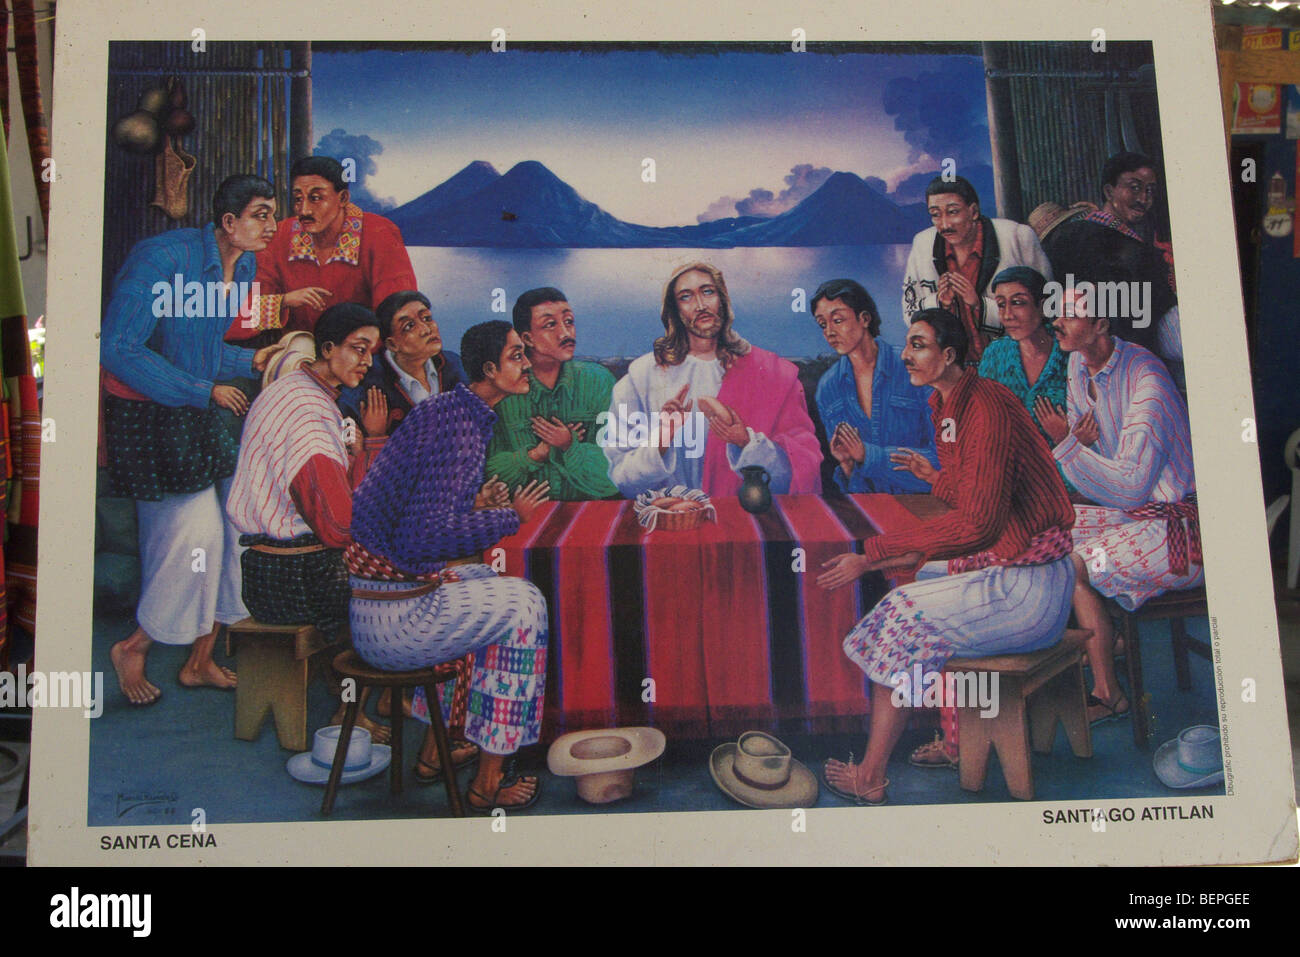 GUATEMALA The Last Supper, a painting seen in a shop in Santiago de Atitlan. PHOTOGRAPH BY SEAN SPRAGUE 2009 - Stock Image